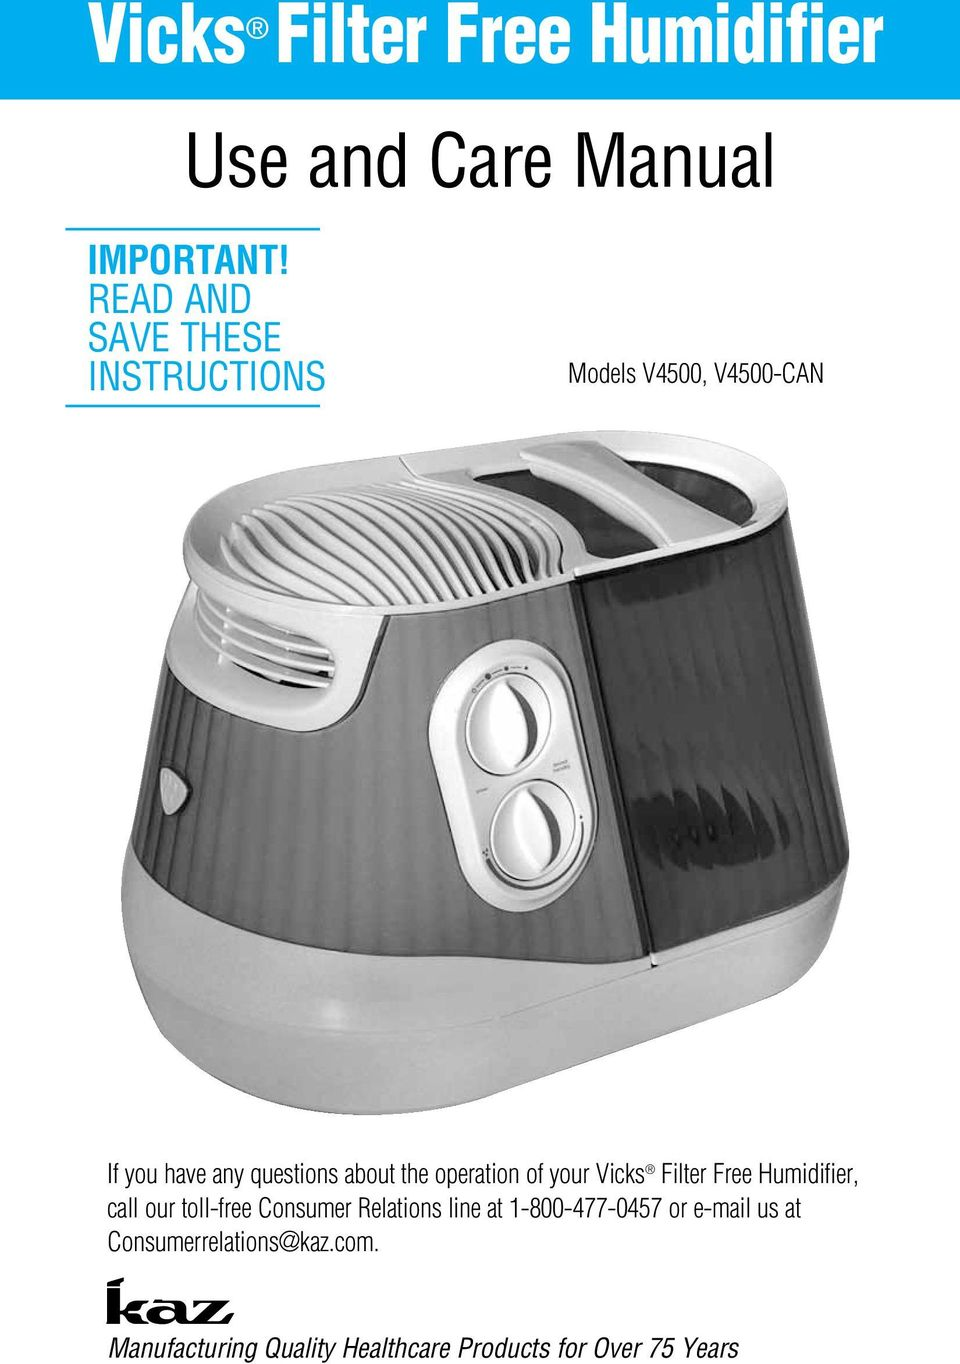 the operation of your Vicks Filter Free Humidifier, call our toll-free Consumer Relations